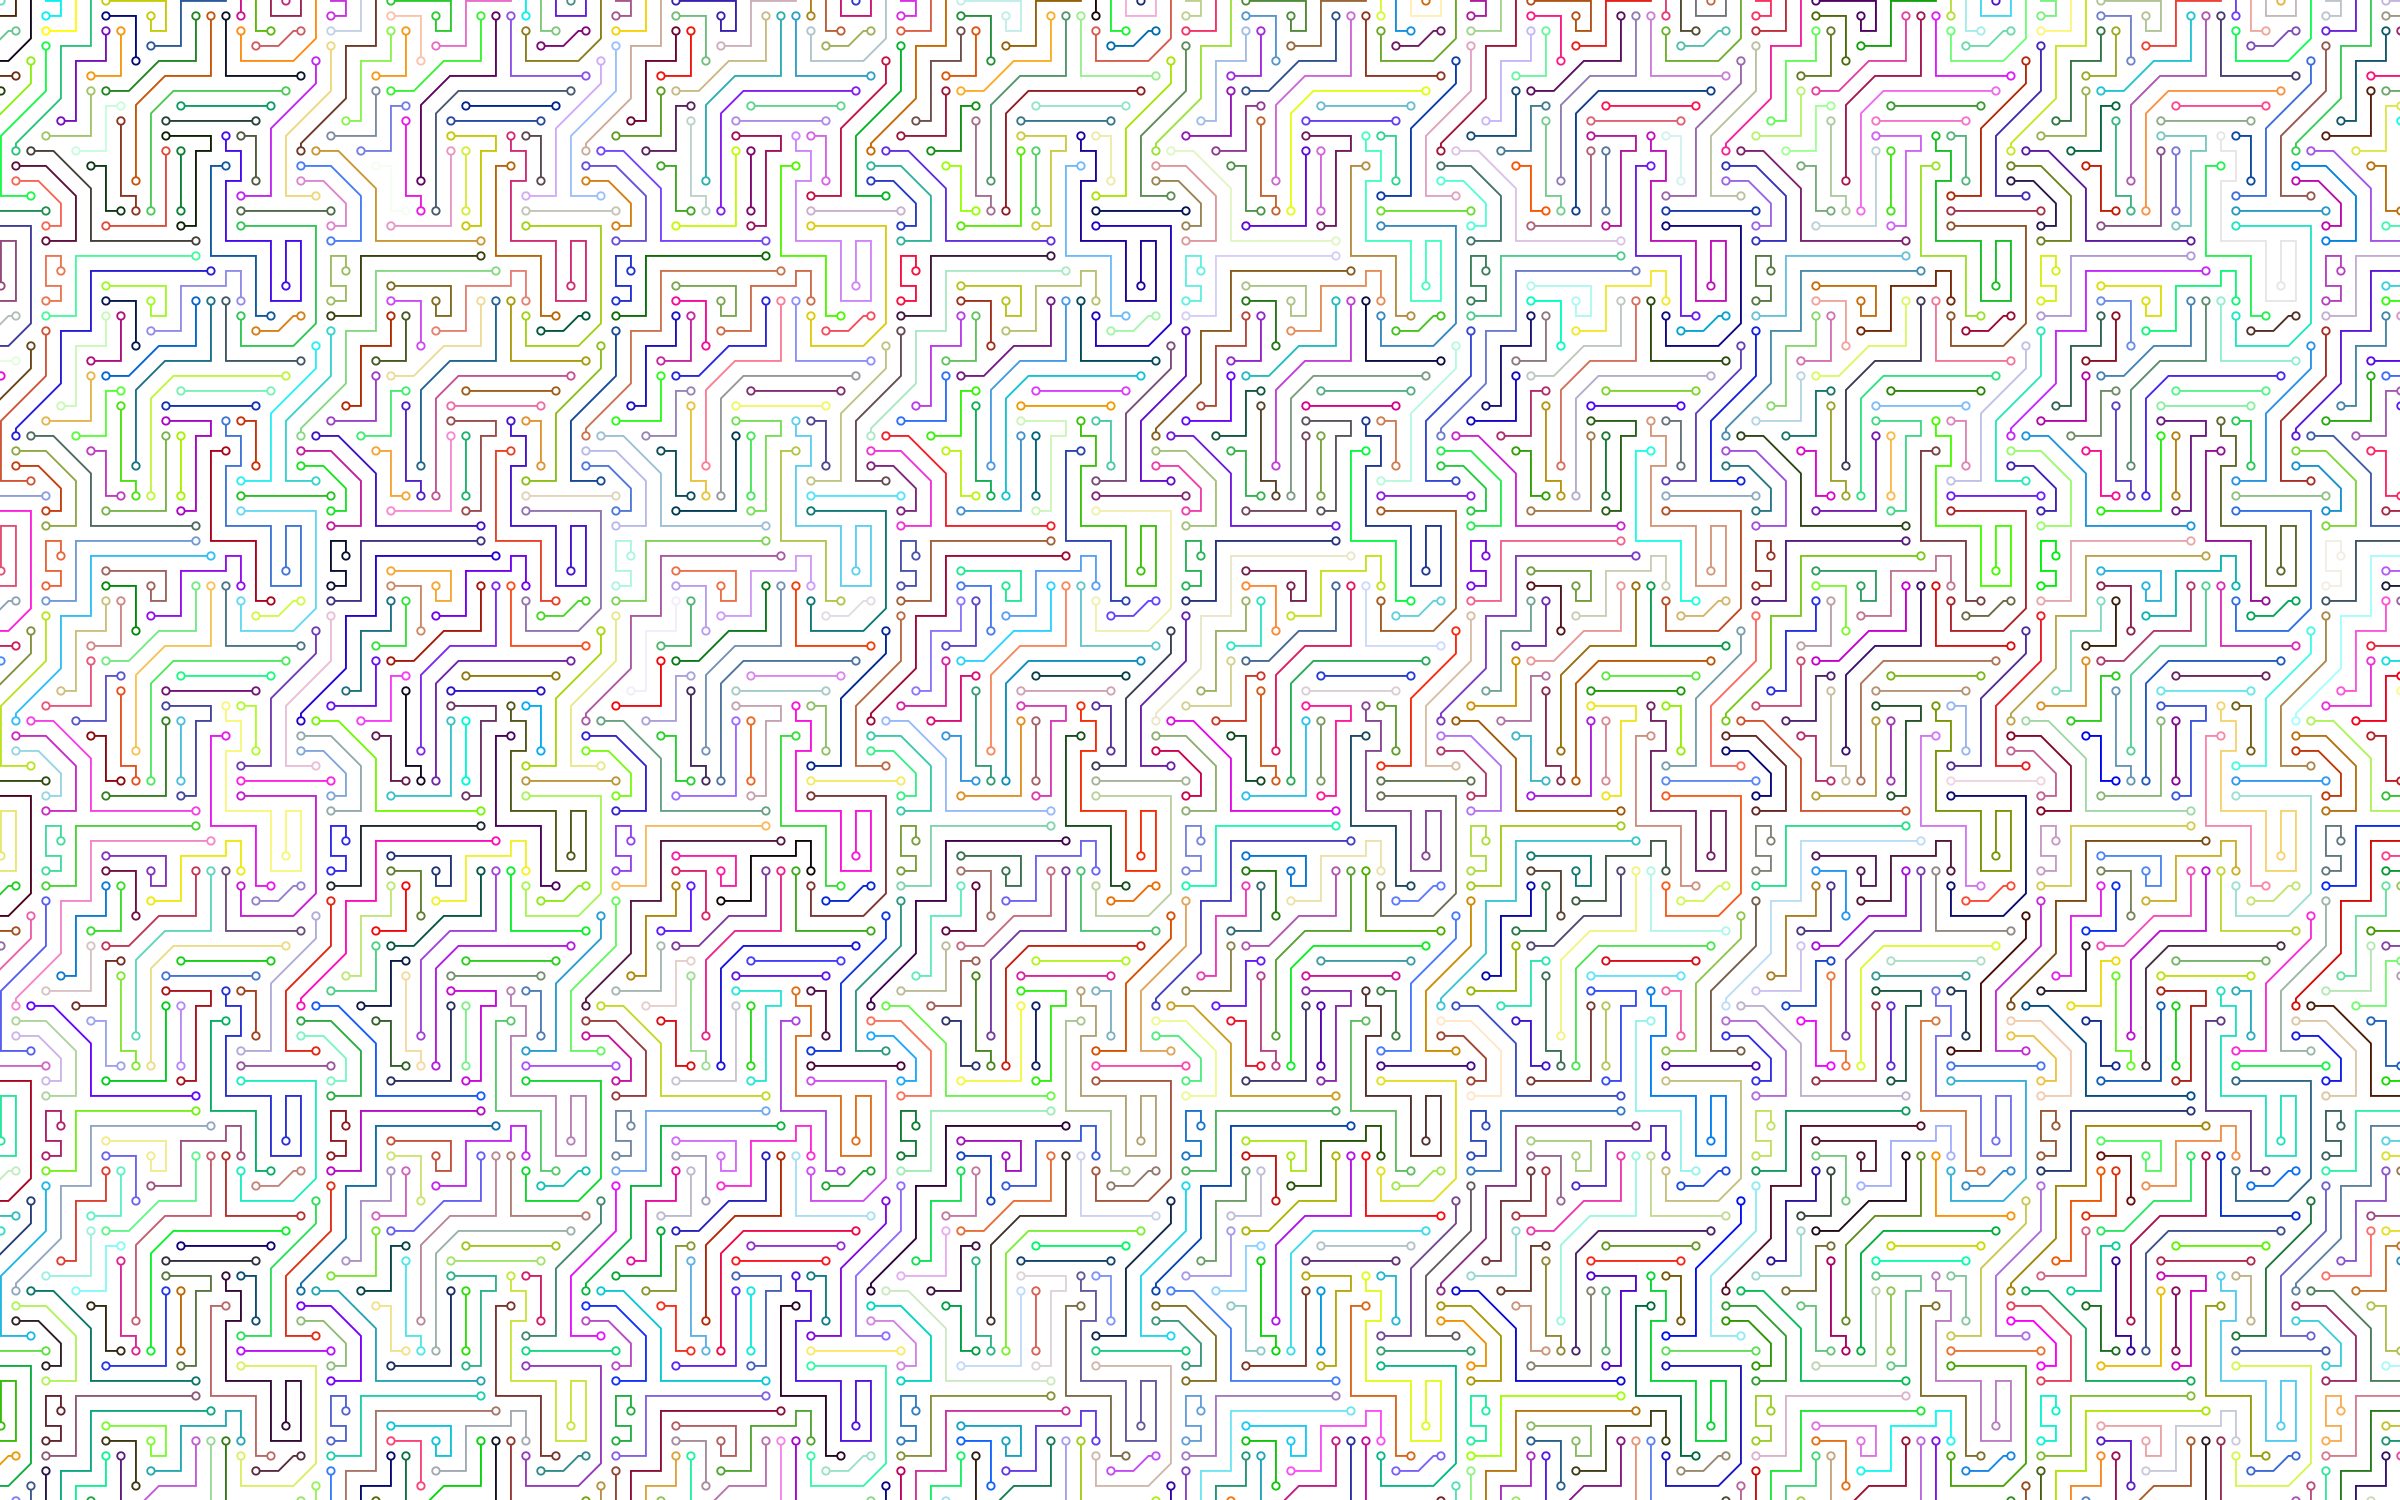 Clipart - Prismatic Circuit Board Pattern No Background